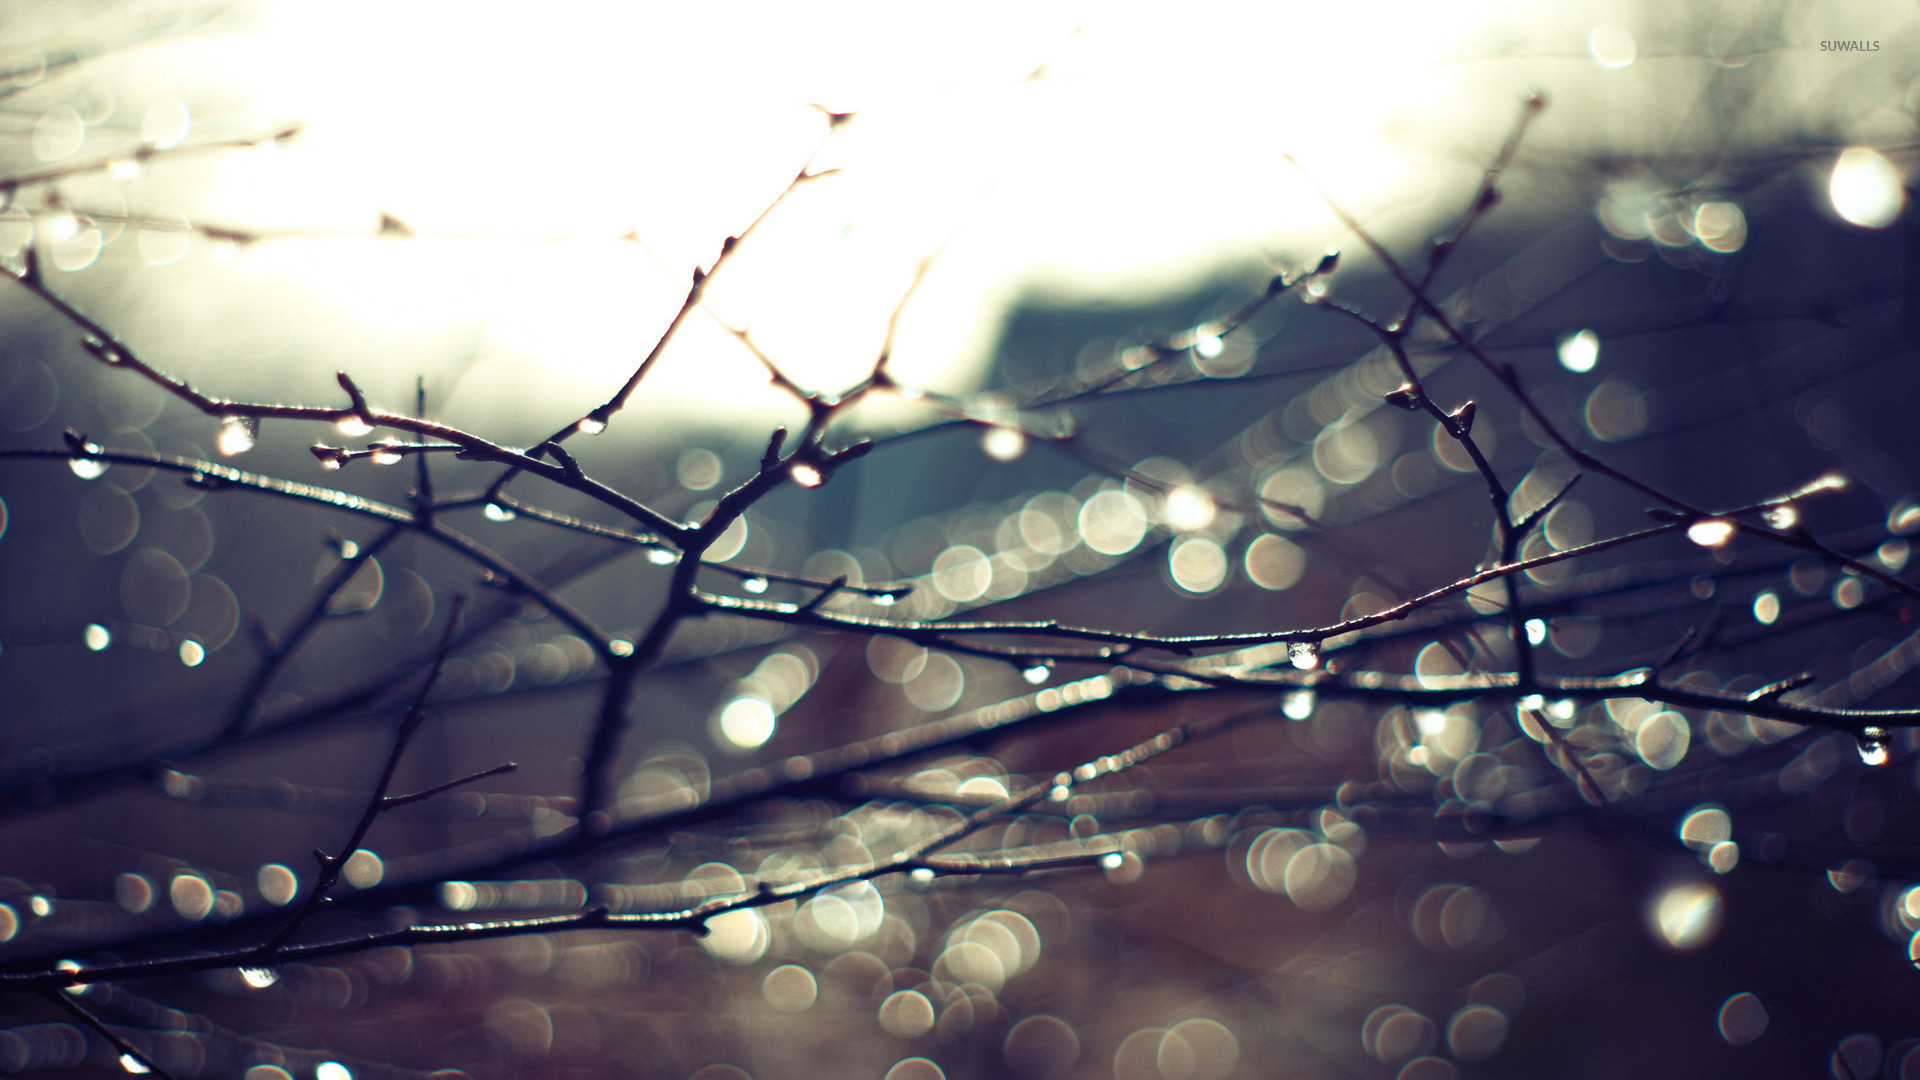 Wet branches wallpaper   Photography wallpapers   16048 1920x1080